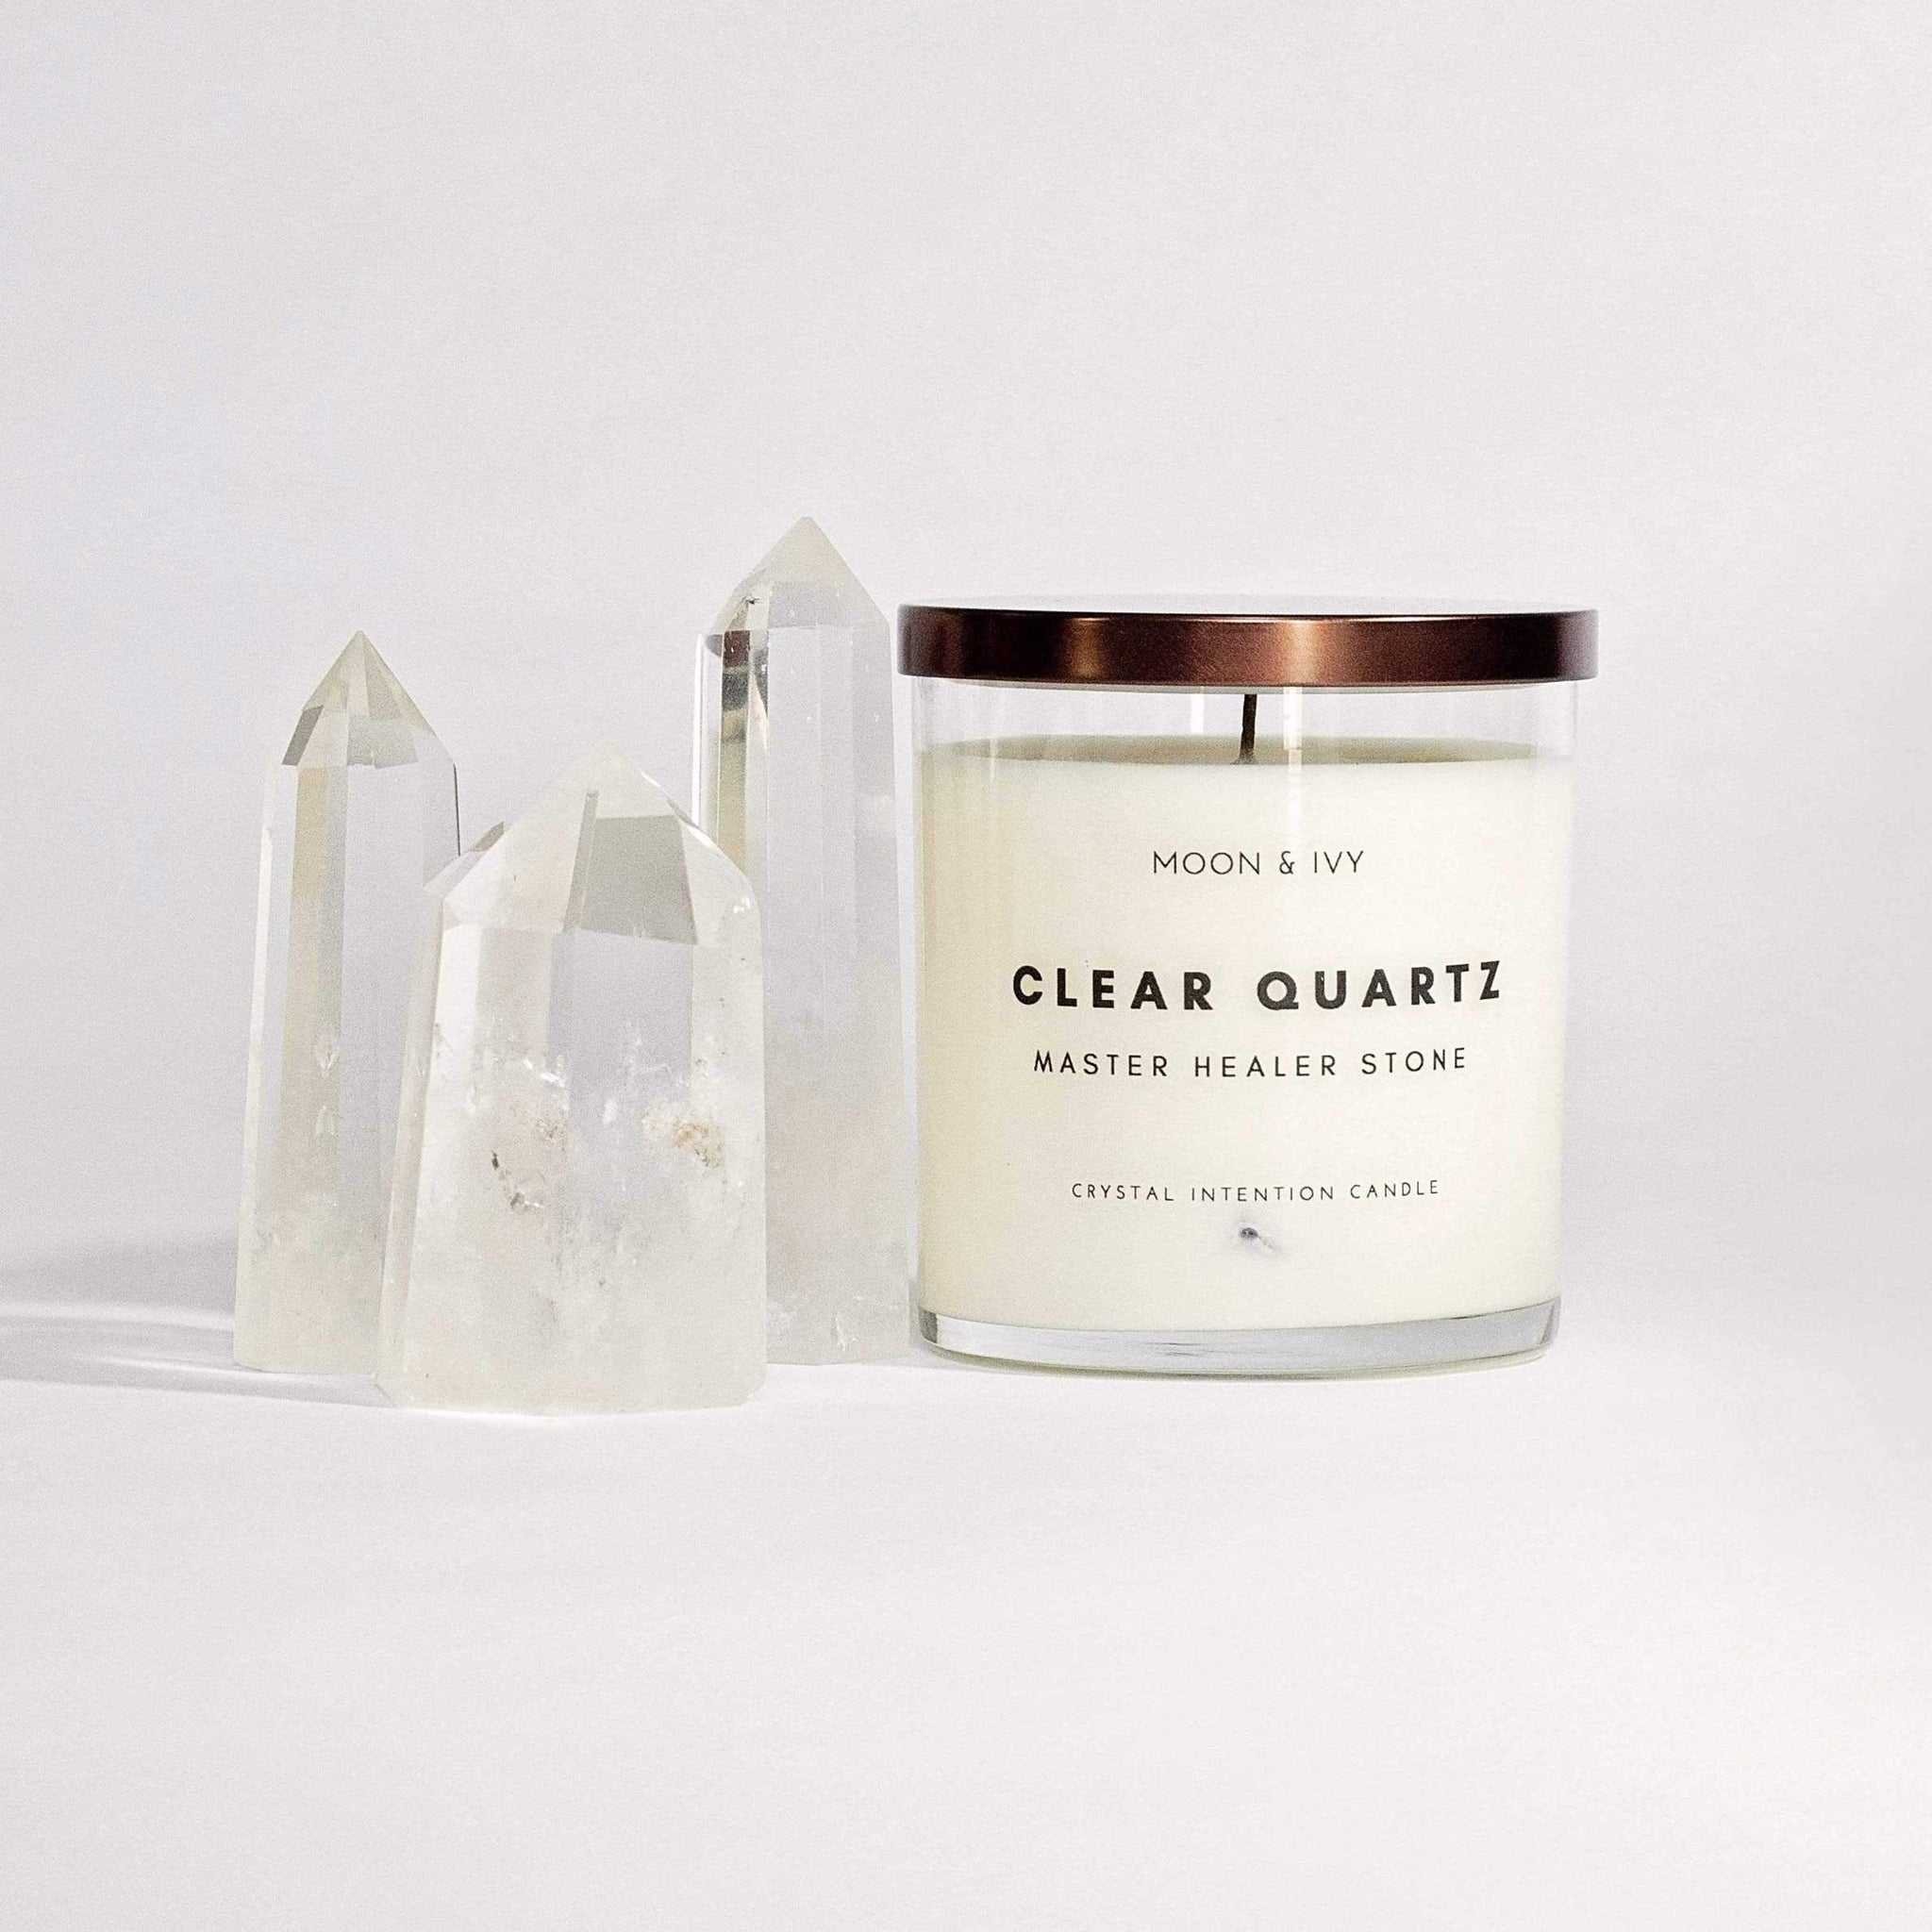 Clear Crystal Quartz Soy Candle Floral/Clean (Master Healer)